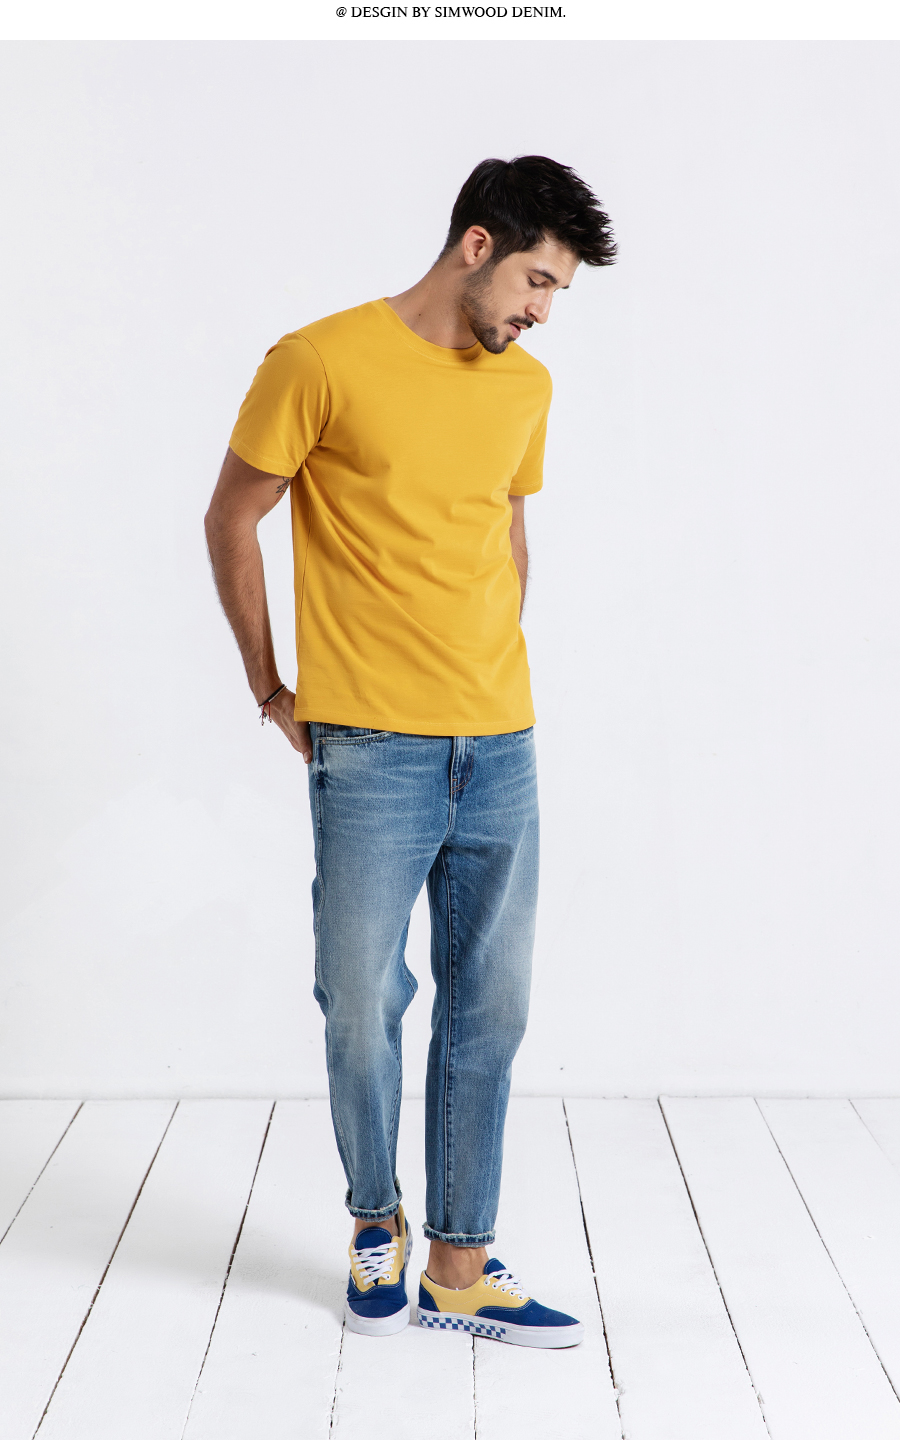 SIMWOOD 19 Summer New T-Shirt Men 100% Cotton Solid Color Casual t shirt Basics O-neck High Quality Plus Size Male Tee 190004 13